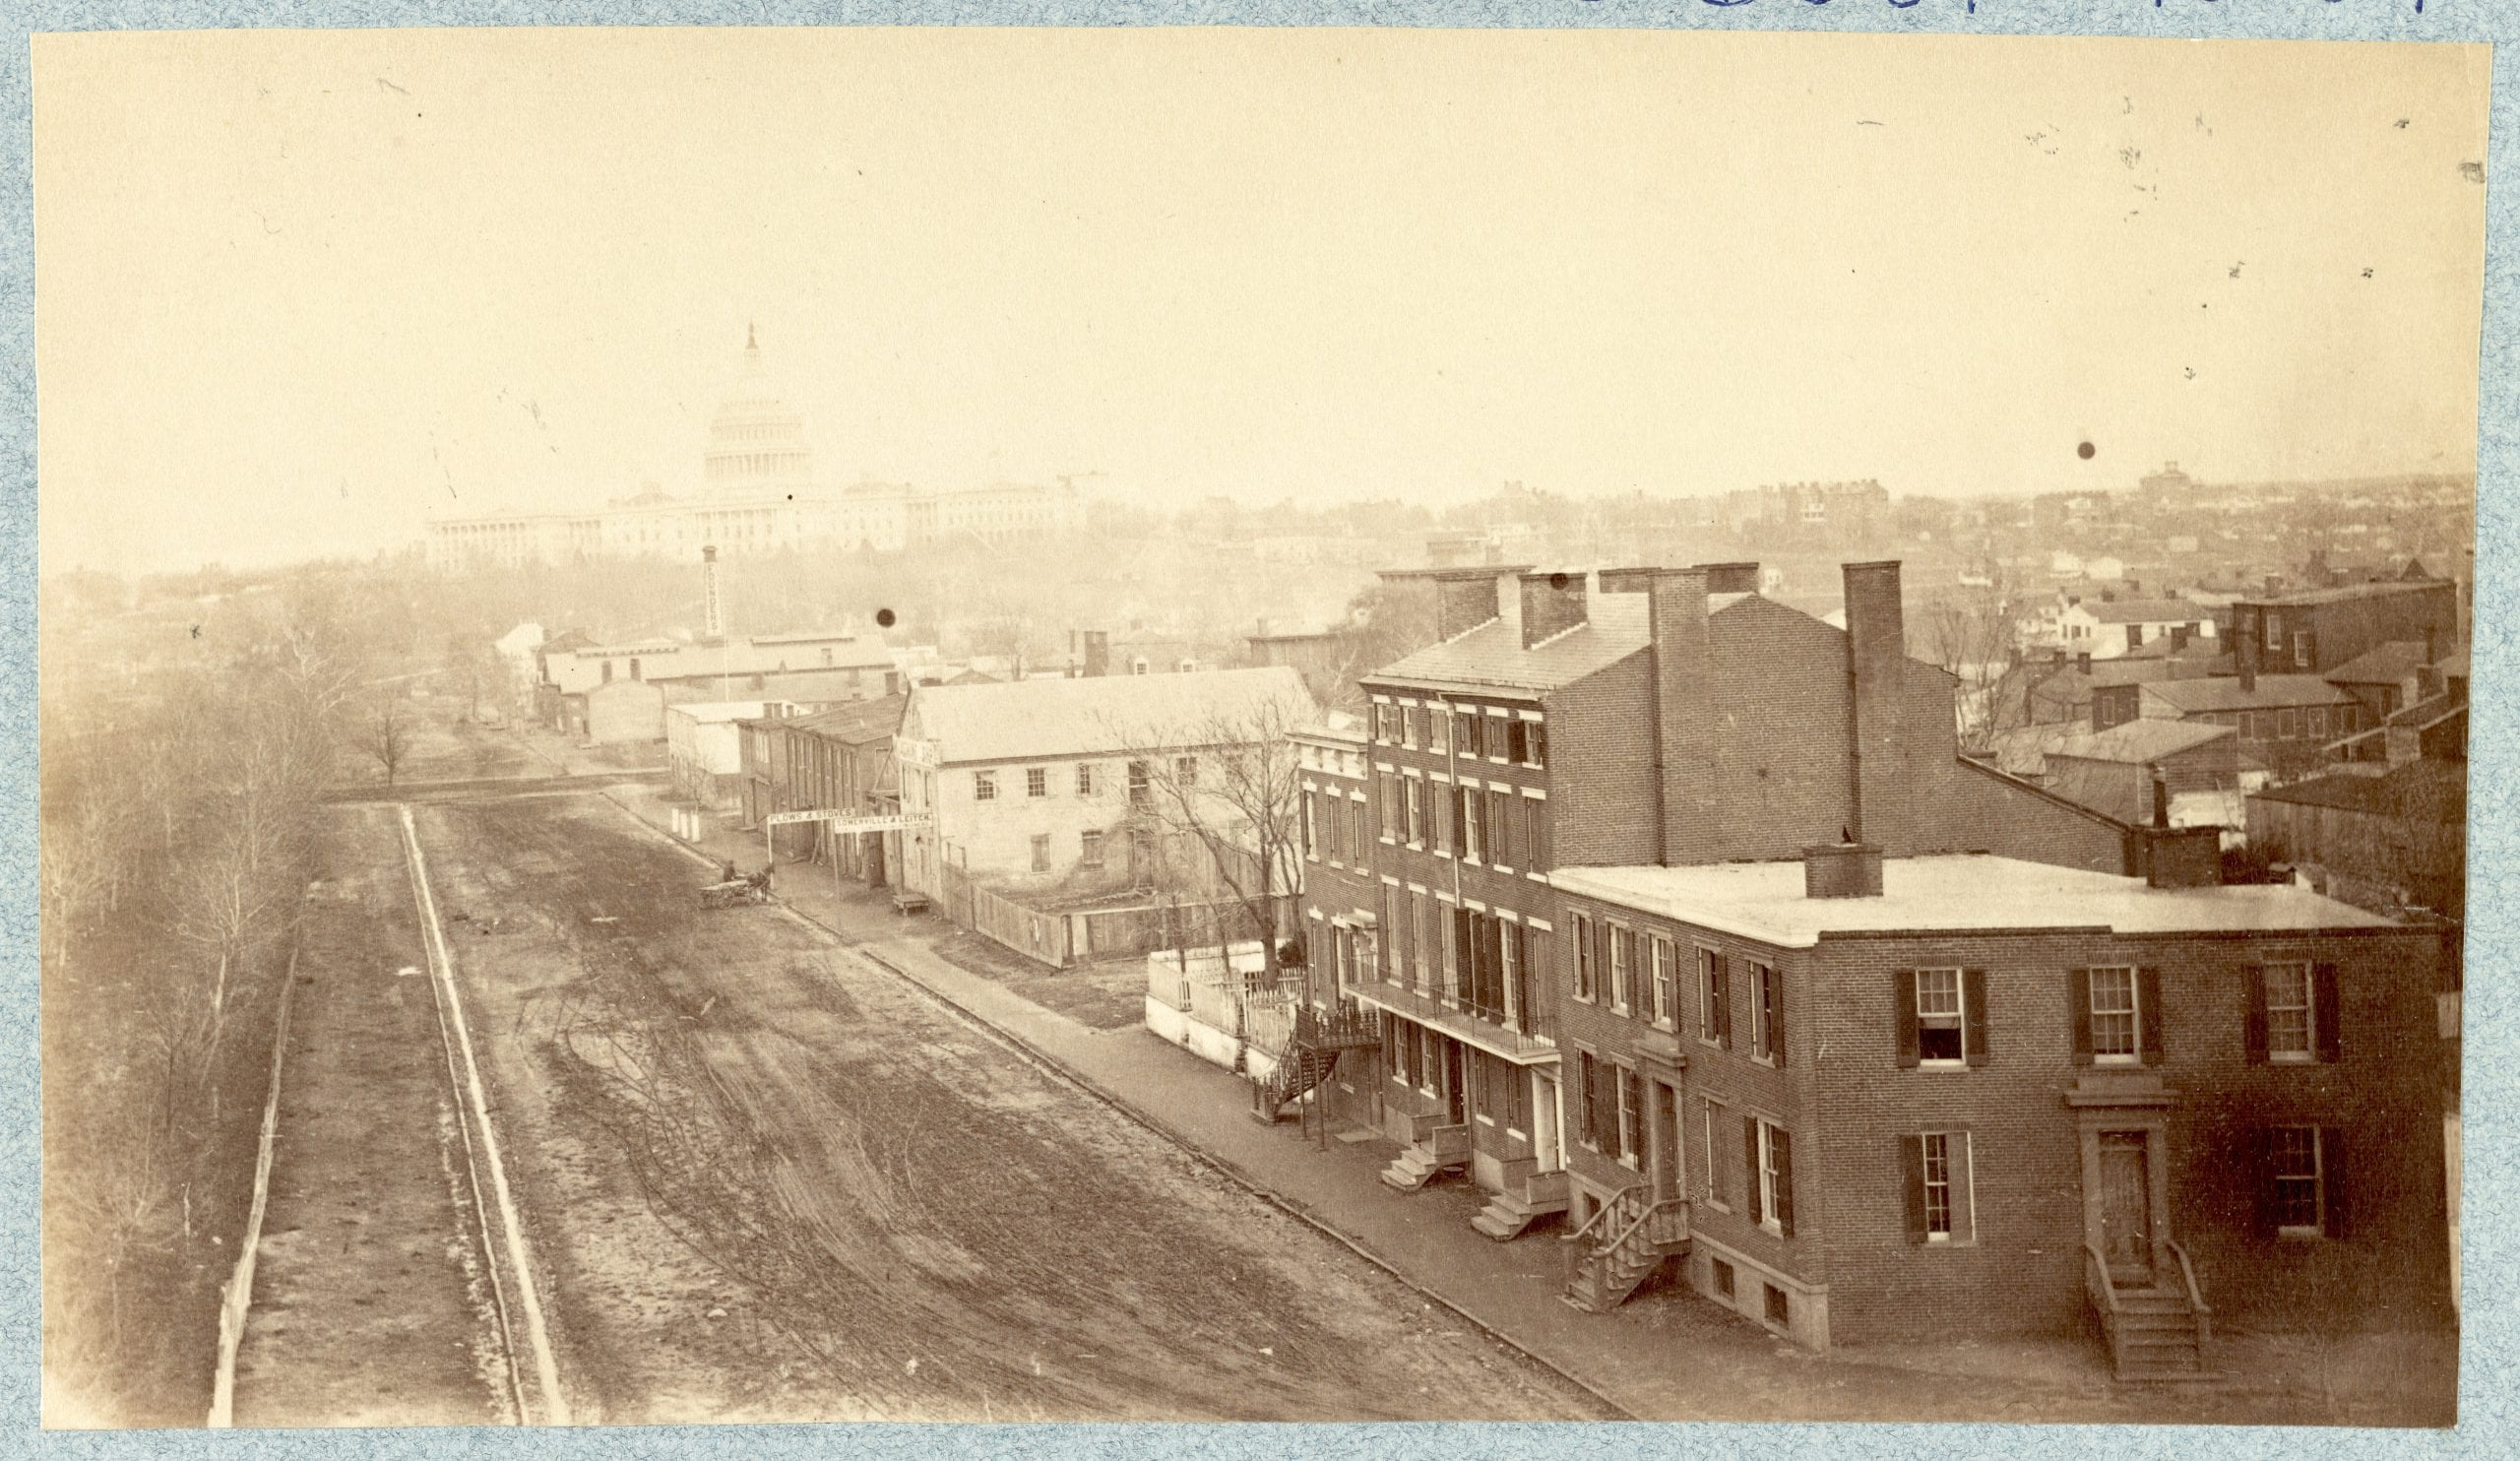 Incredible 1865 Photo of the Capitol